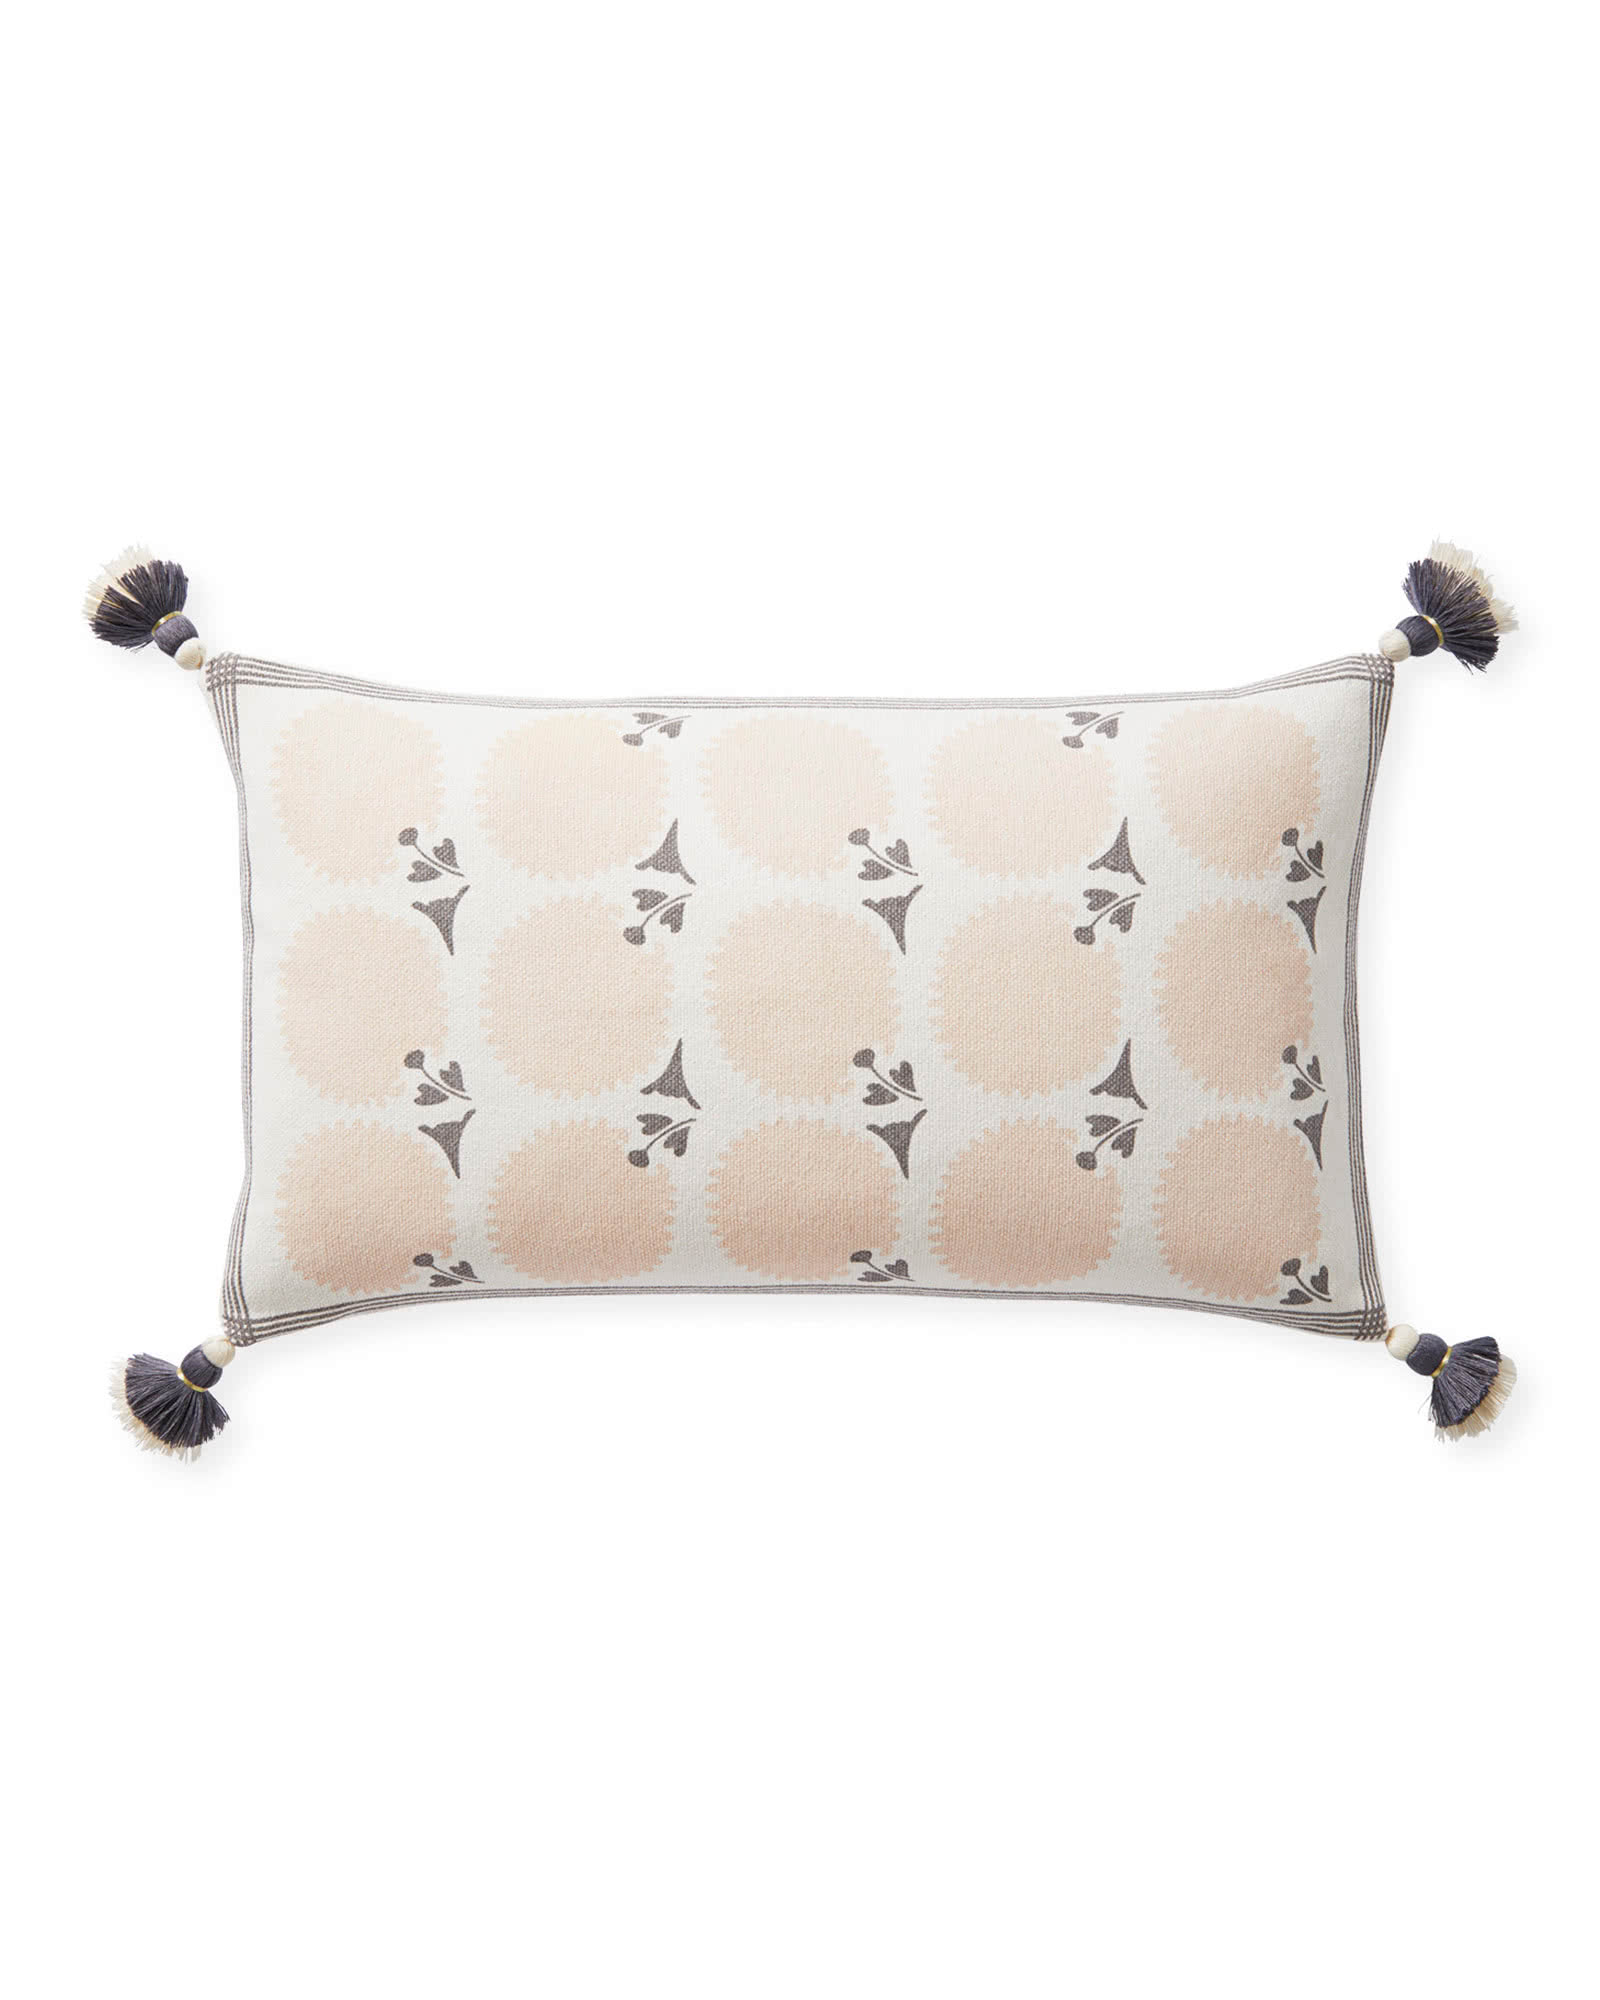 Birchwood Pillow Cover, Pink Sand